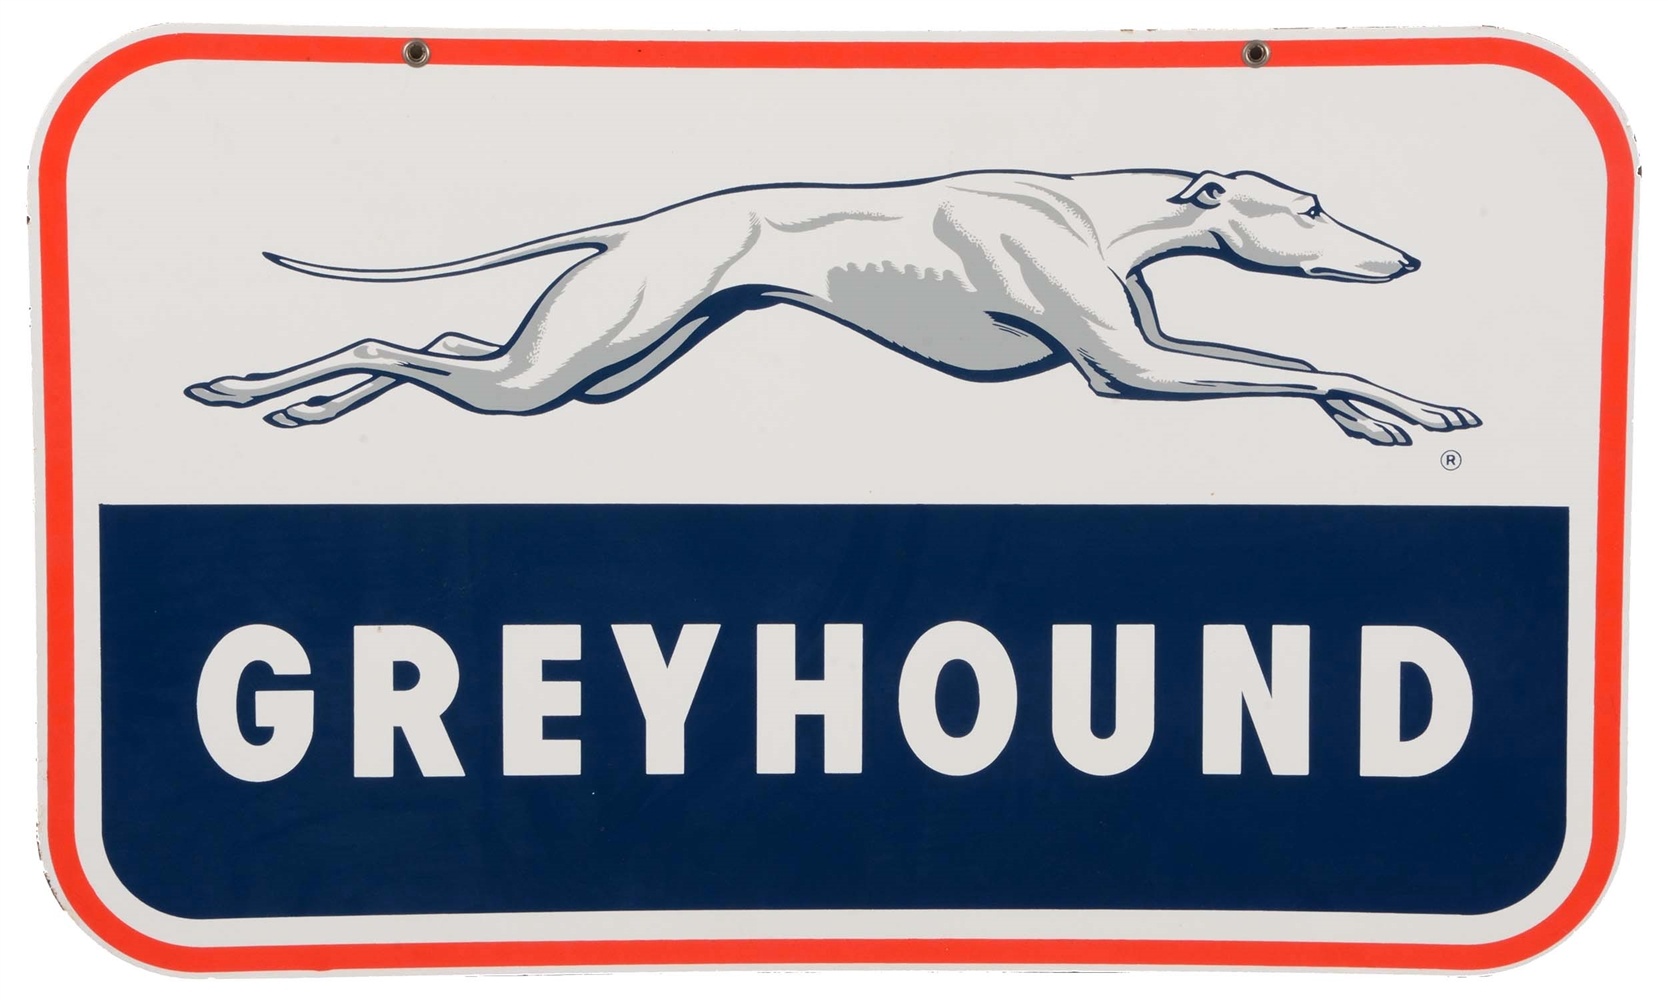 Greyhound Bus Lines Porcelain Sign with Dog Graphic.